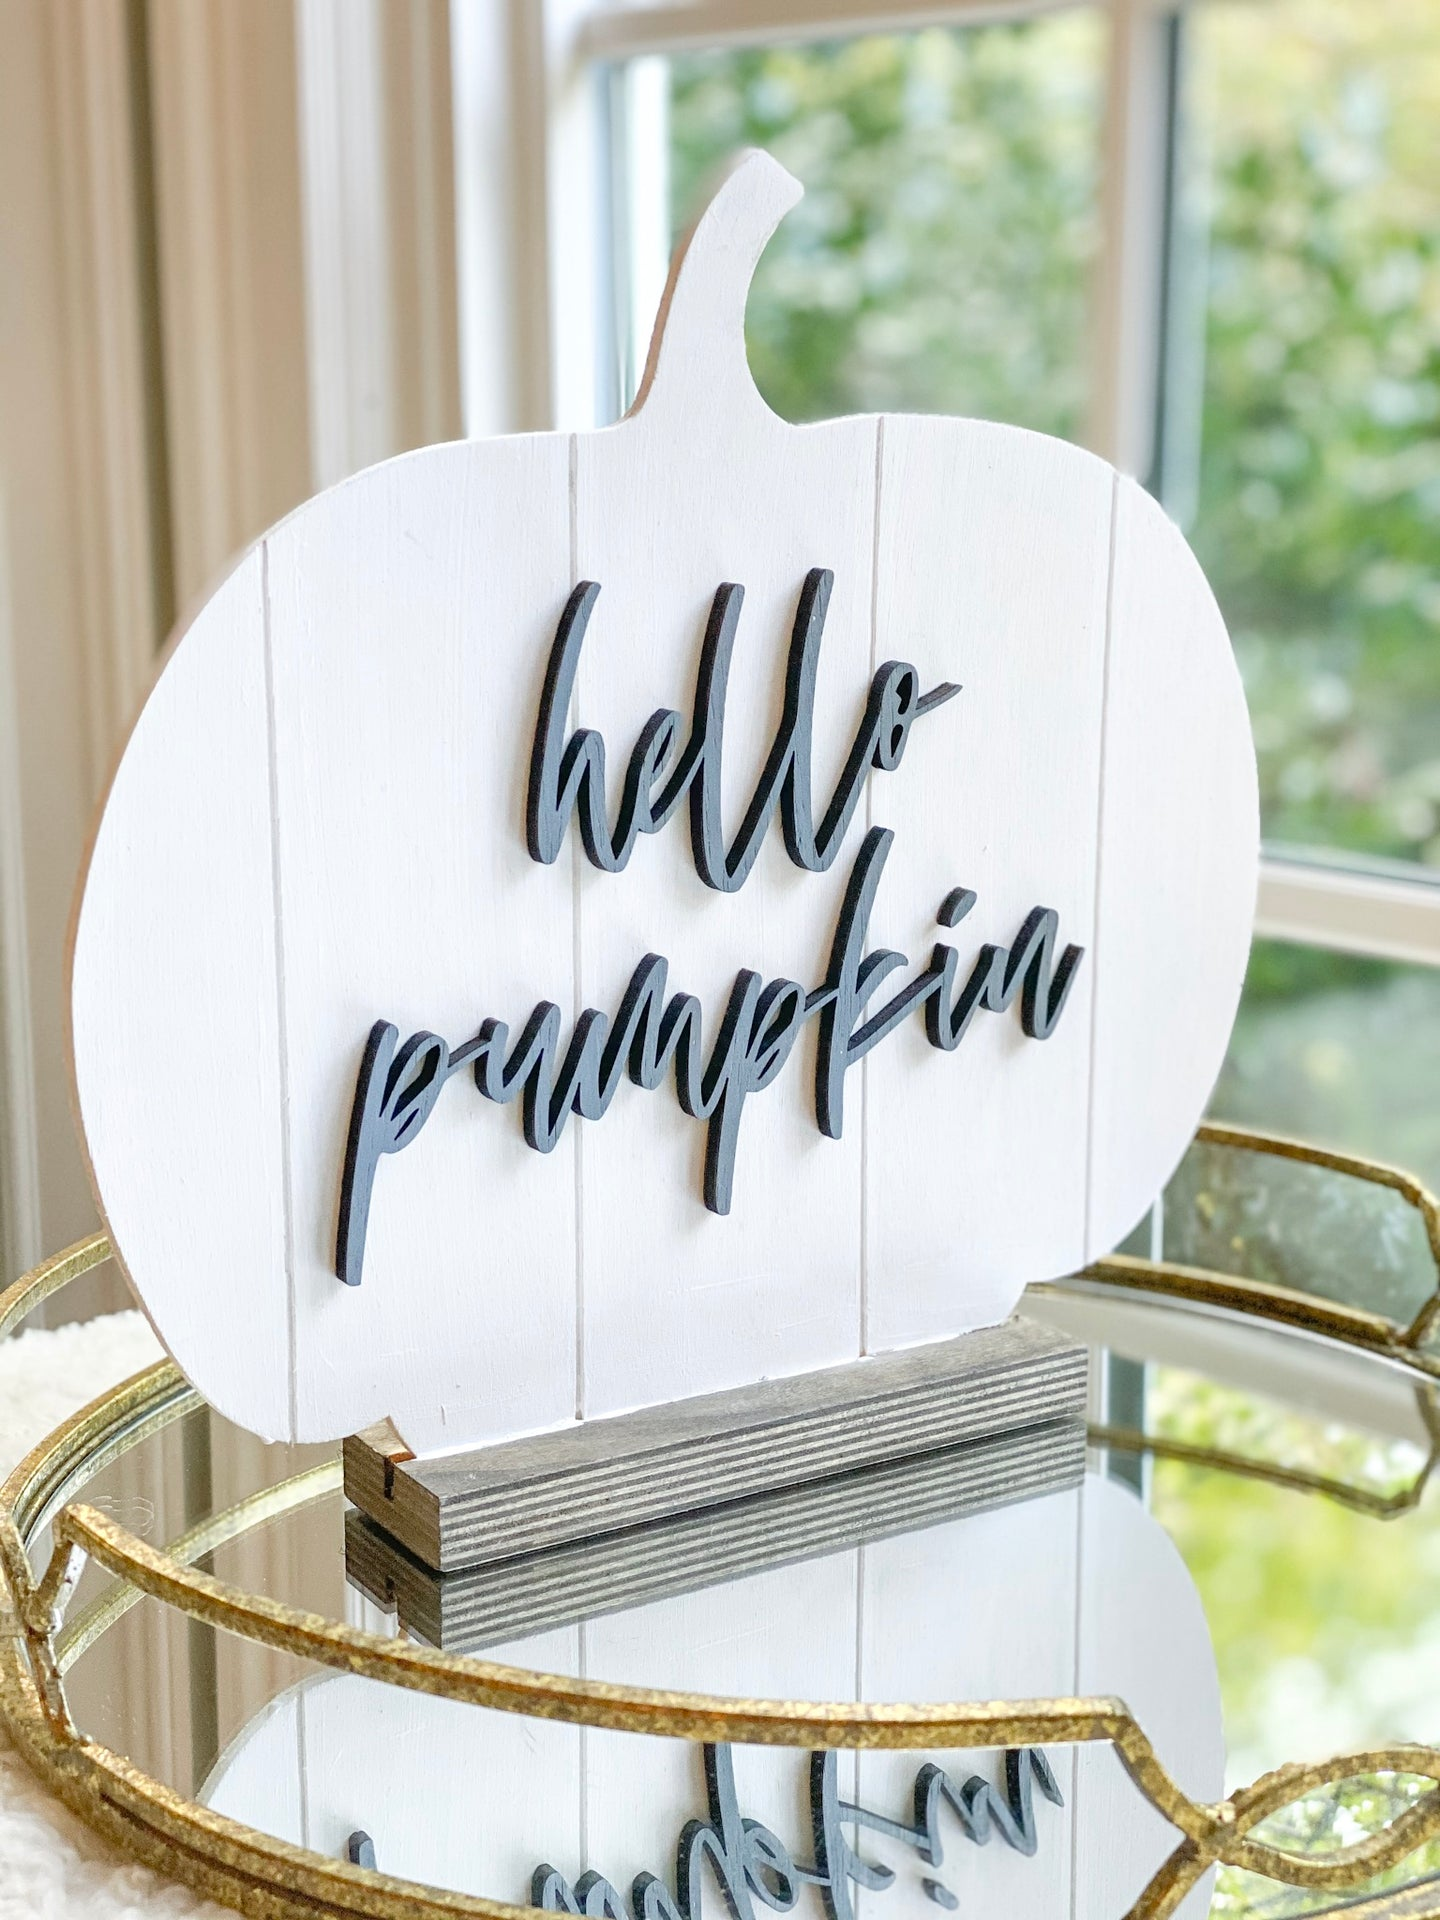 Shiplap Wood Pumpkin with Stand - hello pumpkin